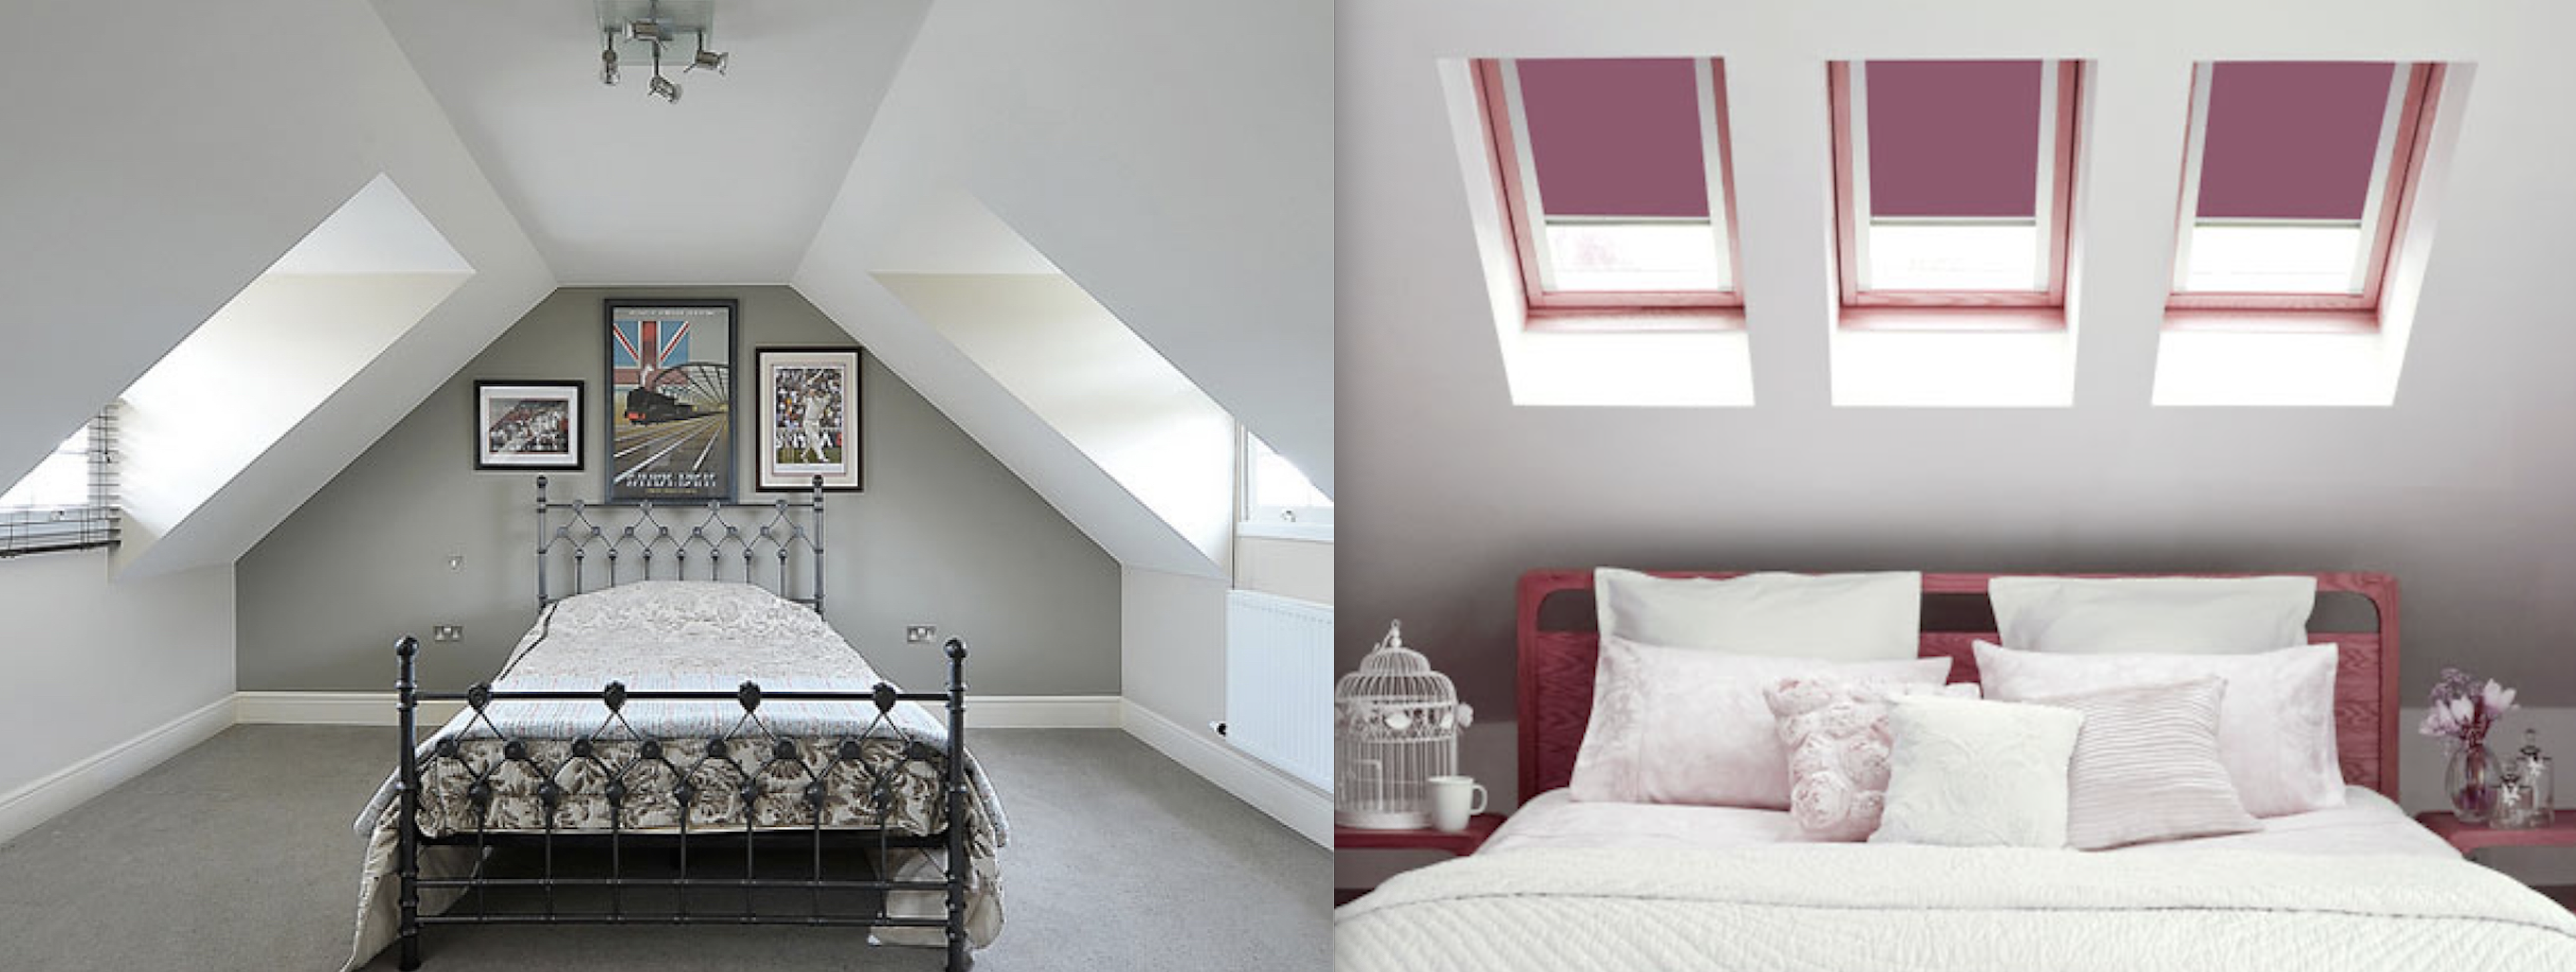 Beautiful Dormer loft conversion in Whalley Range, creating a new master bedroom with private bathroom, walk in wardrobe and stunning new oak staircase with Velux polyurethane SK06 GPU windows.